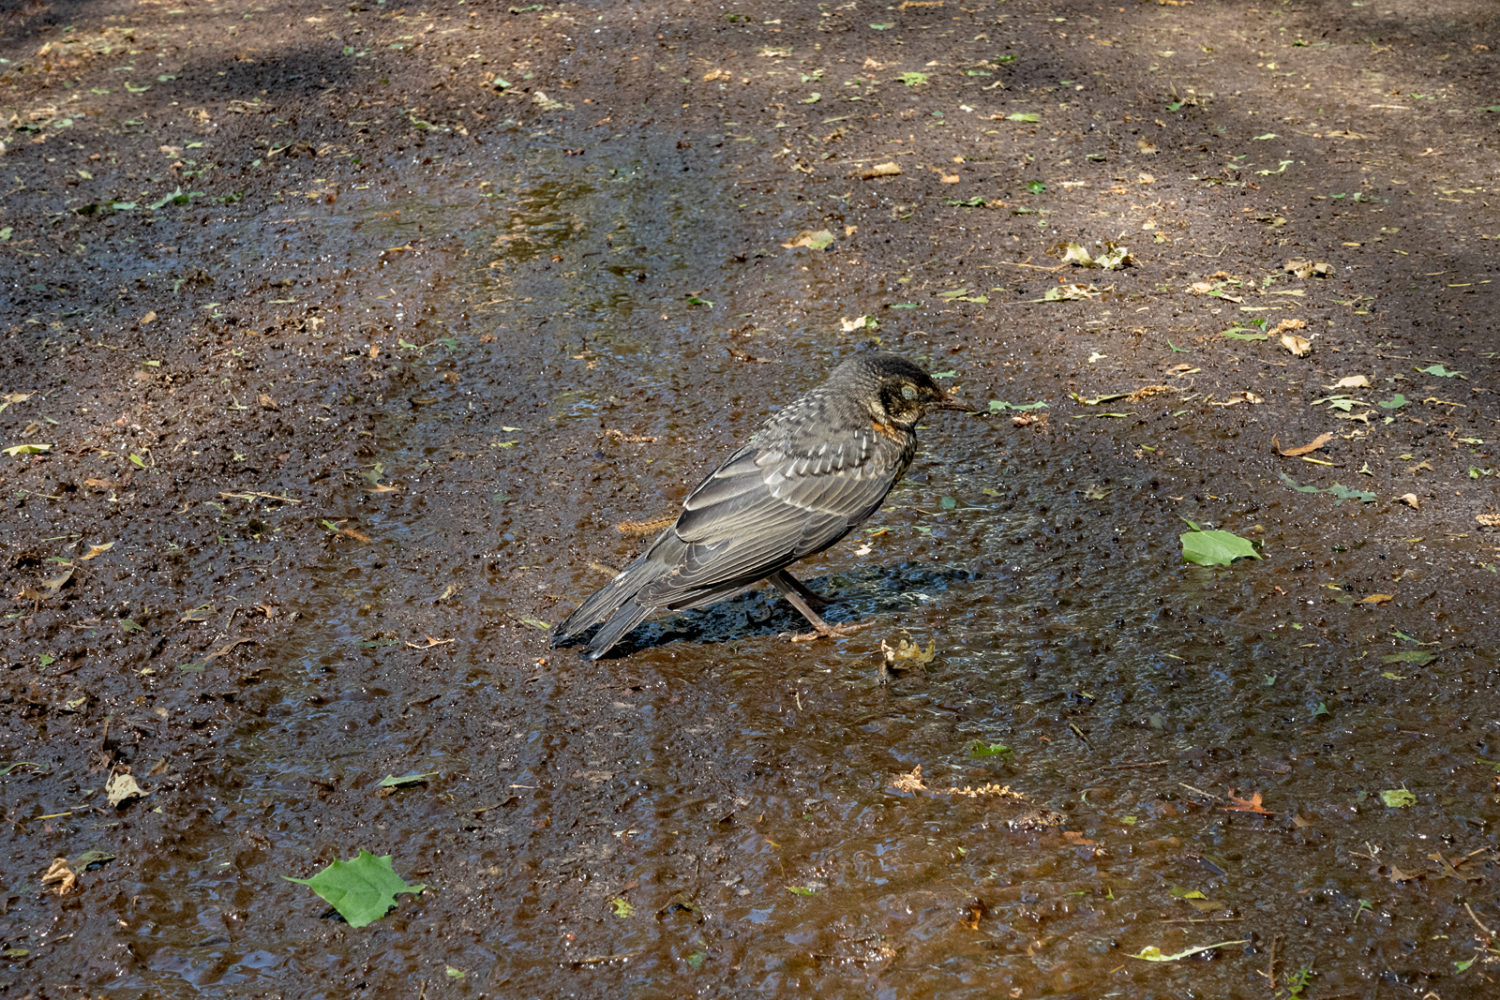 Bird standing in the road amidst Gypsy Moth poop and pieces of leaves